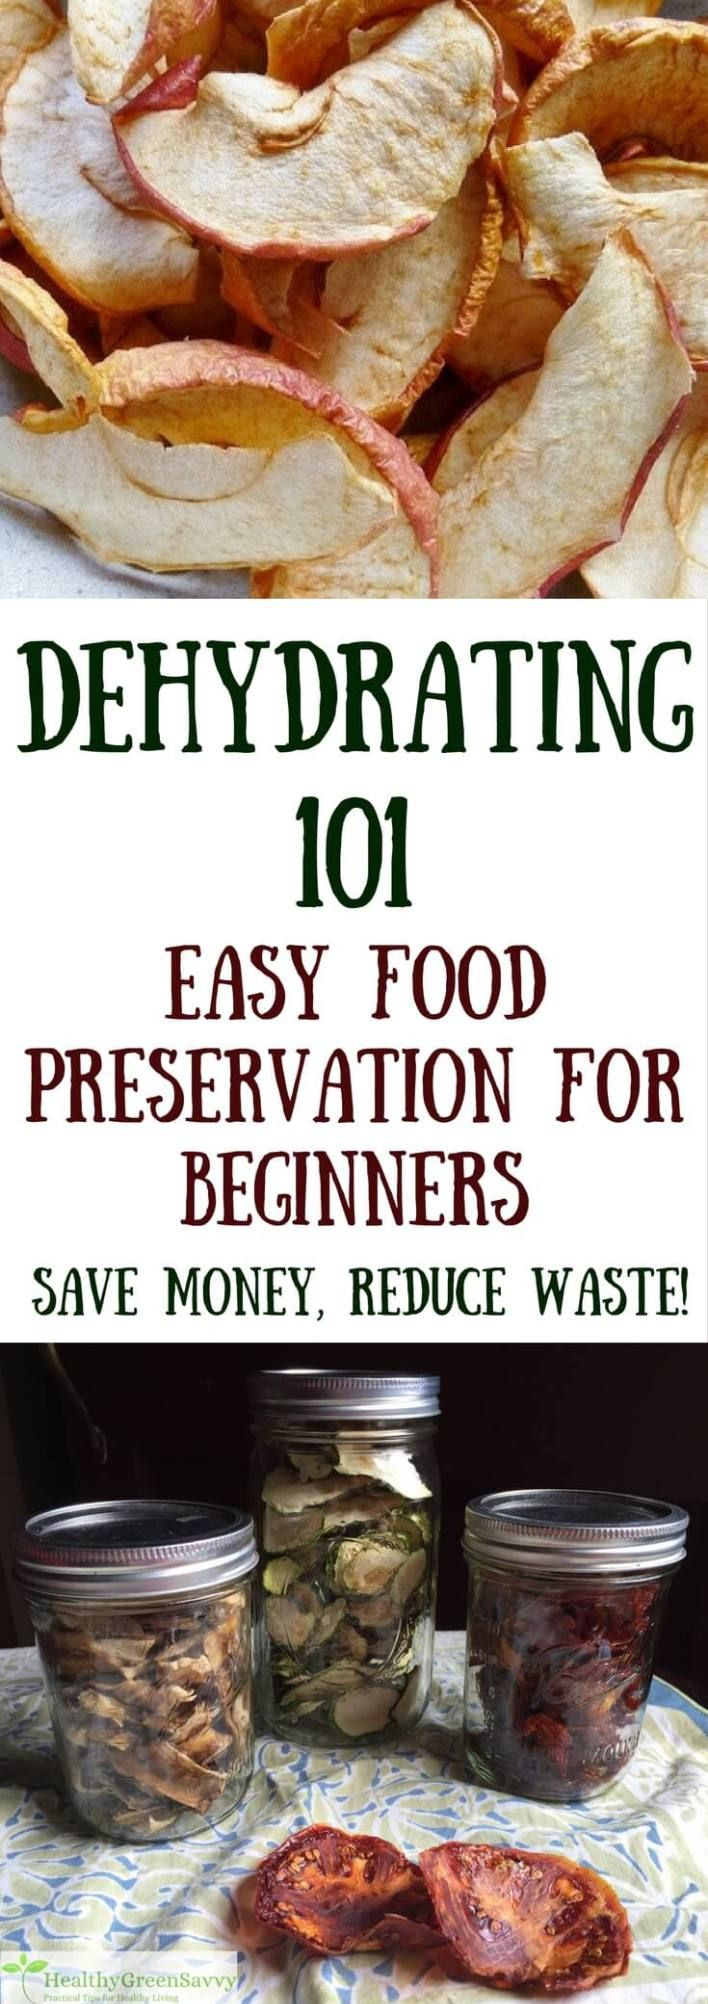 Dehydrating food is easy, economical, and lets you enjoy the bounties of your summer garden all year round! Never tried dehydrating food before? Here's what you need to know to get started. Click to read more or pin to save for later.